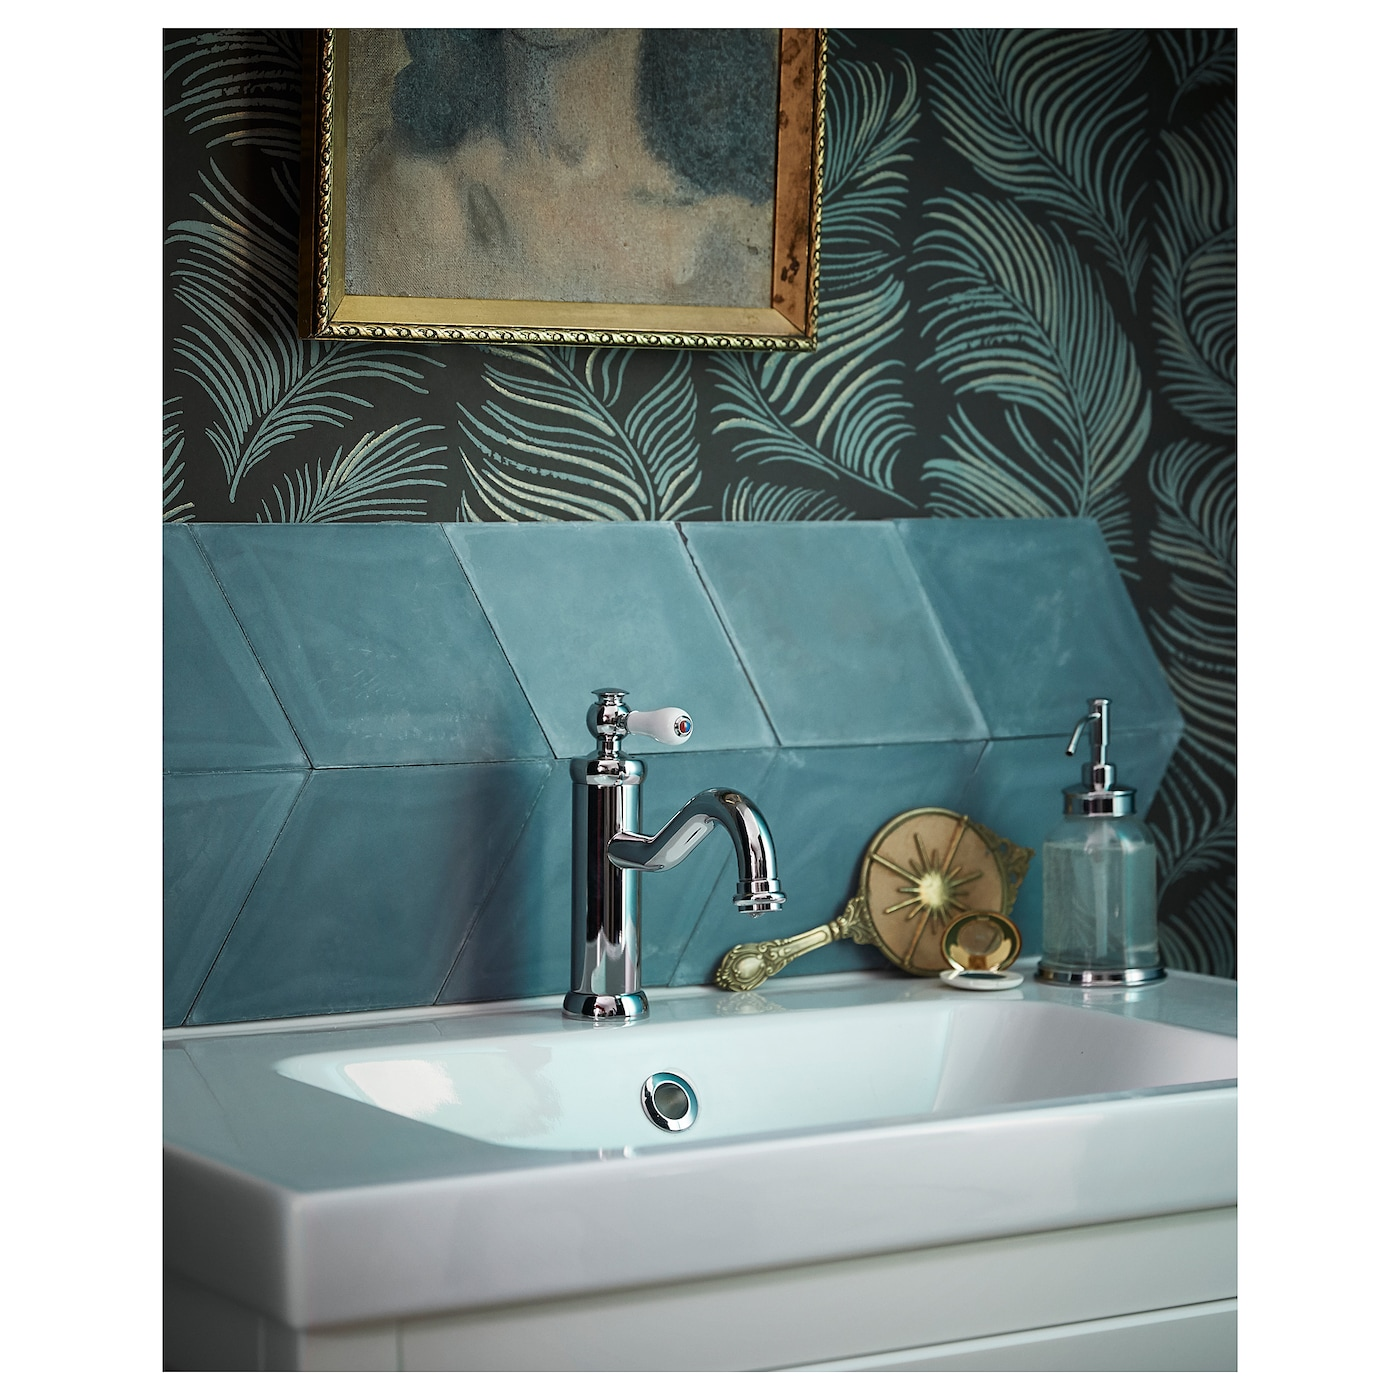 HAMNSKÄR Wash-basin mixer tap with strainer Chrome-plated - IKEA